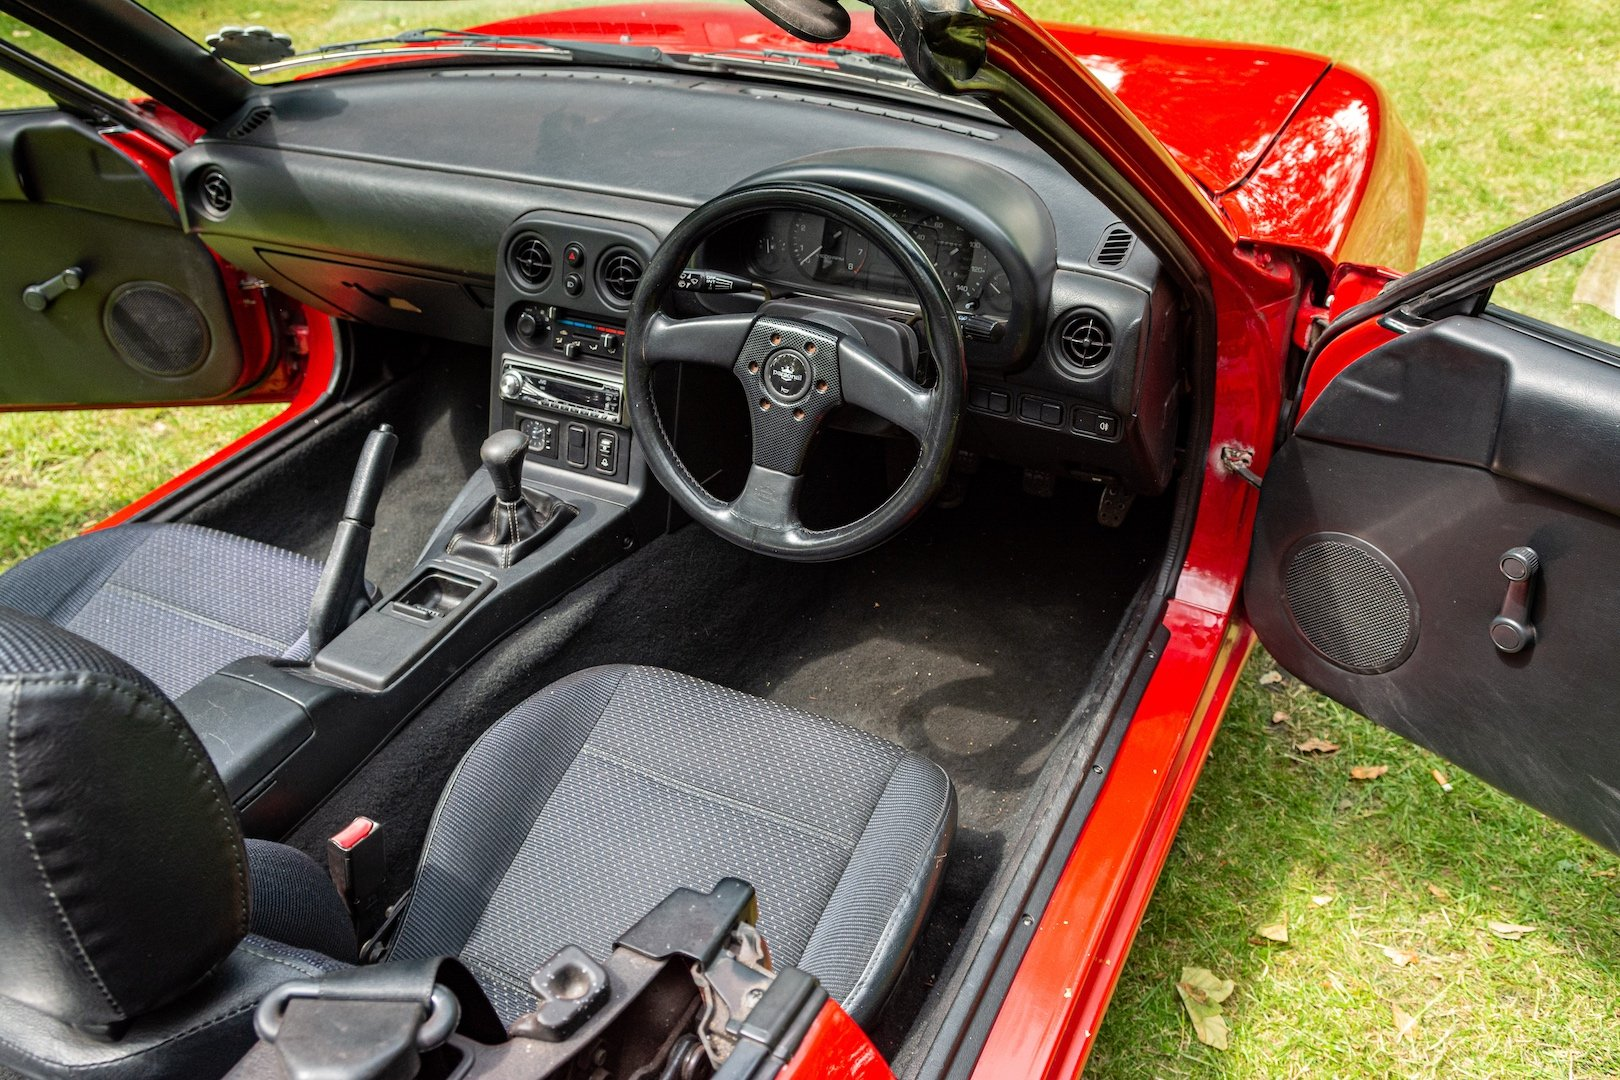 1996 Newly-restored Mazda MX5 Mk 1, low mileage for age For Sale (picture 3 of 6)